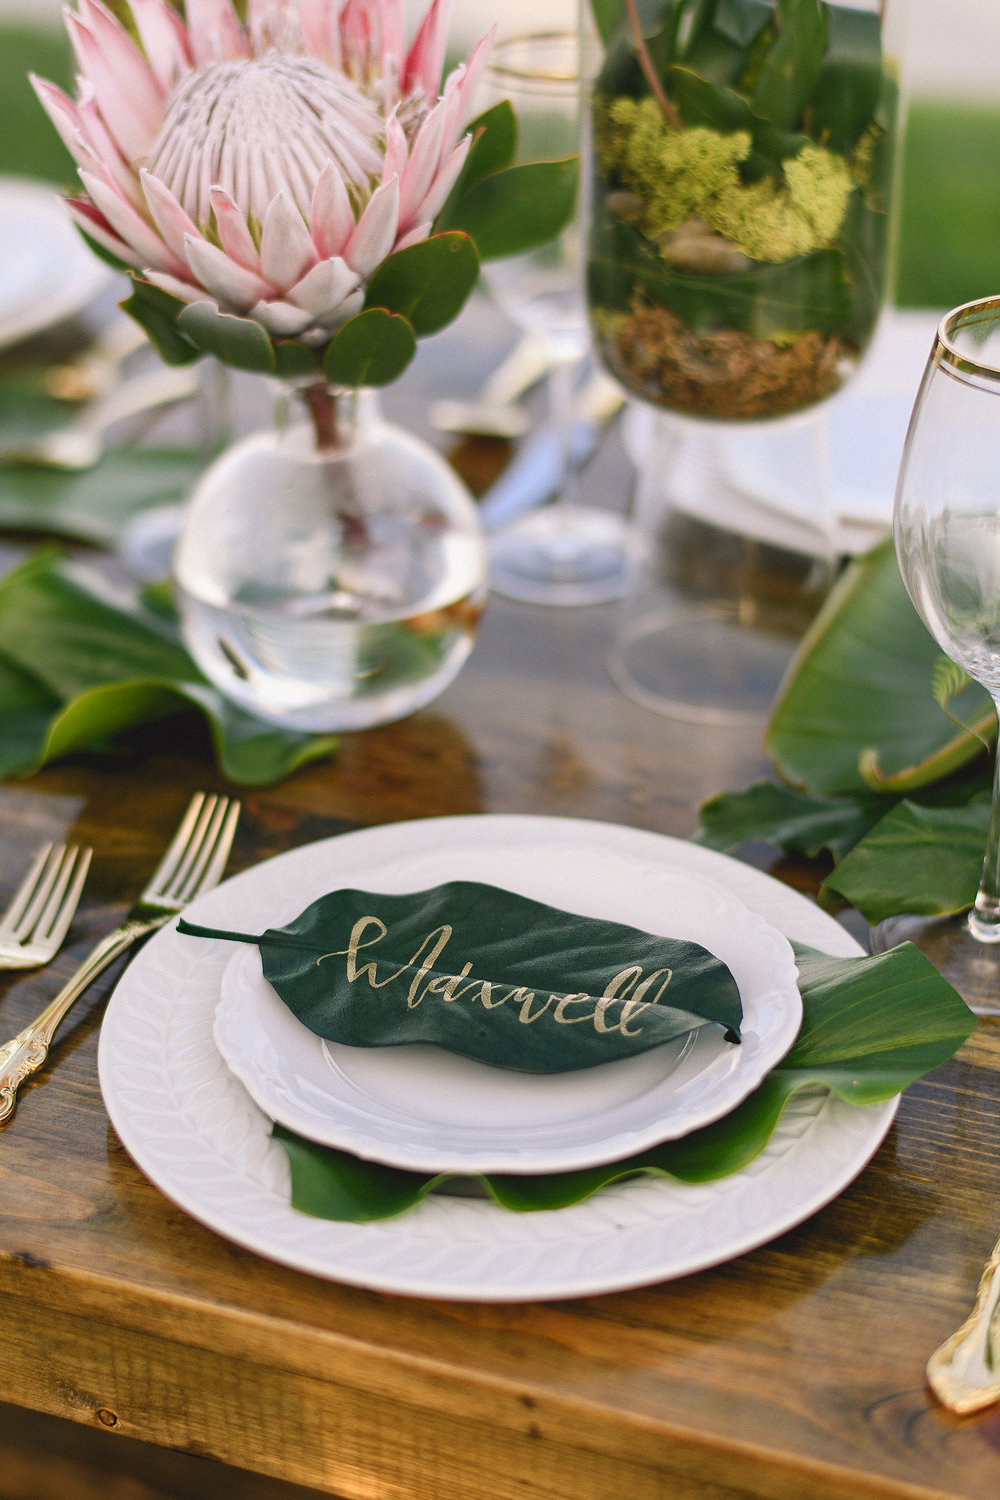 Tropical Leaf Place Card Calligraphy  Photography:  Sage Justice Wedding & Portrait Photography  Wedding Planning & Design:  Love Marks the Spot  Floral Design:  Haydee's Creative Flowers  Venue:  The Catamaran Resort Hotel